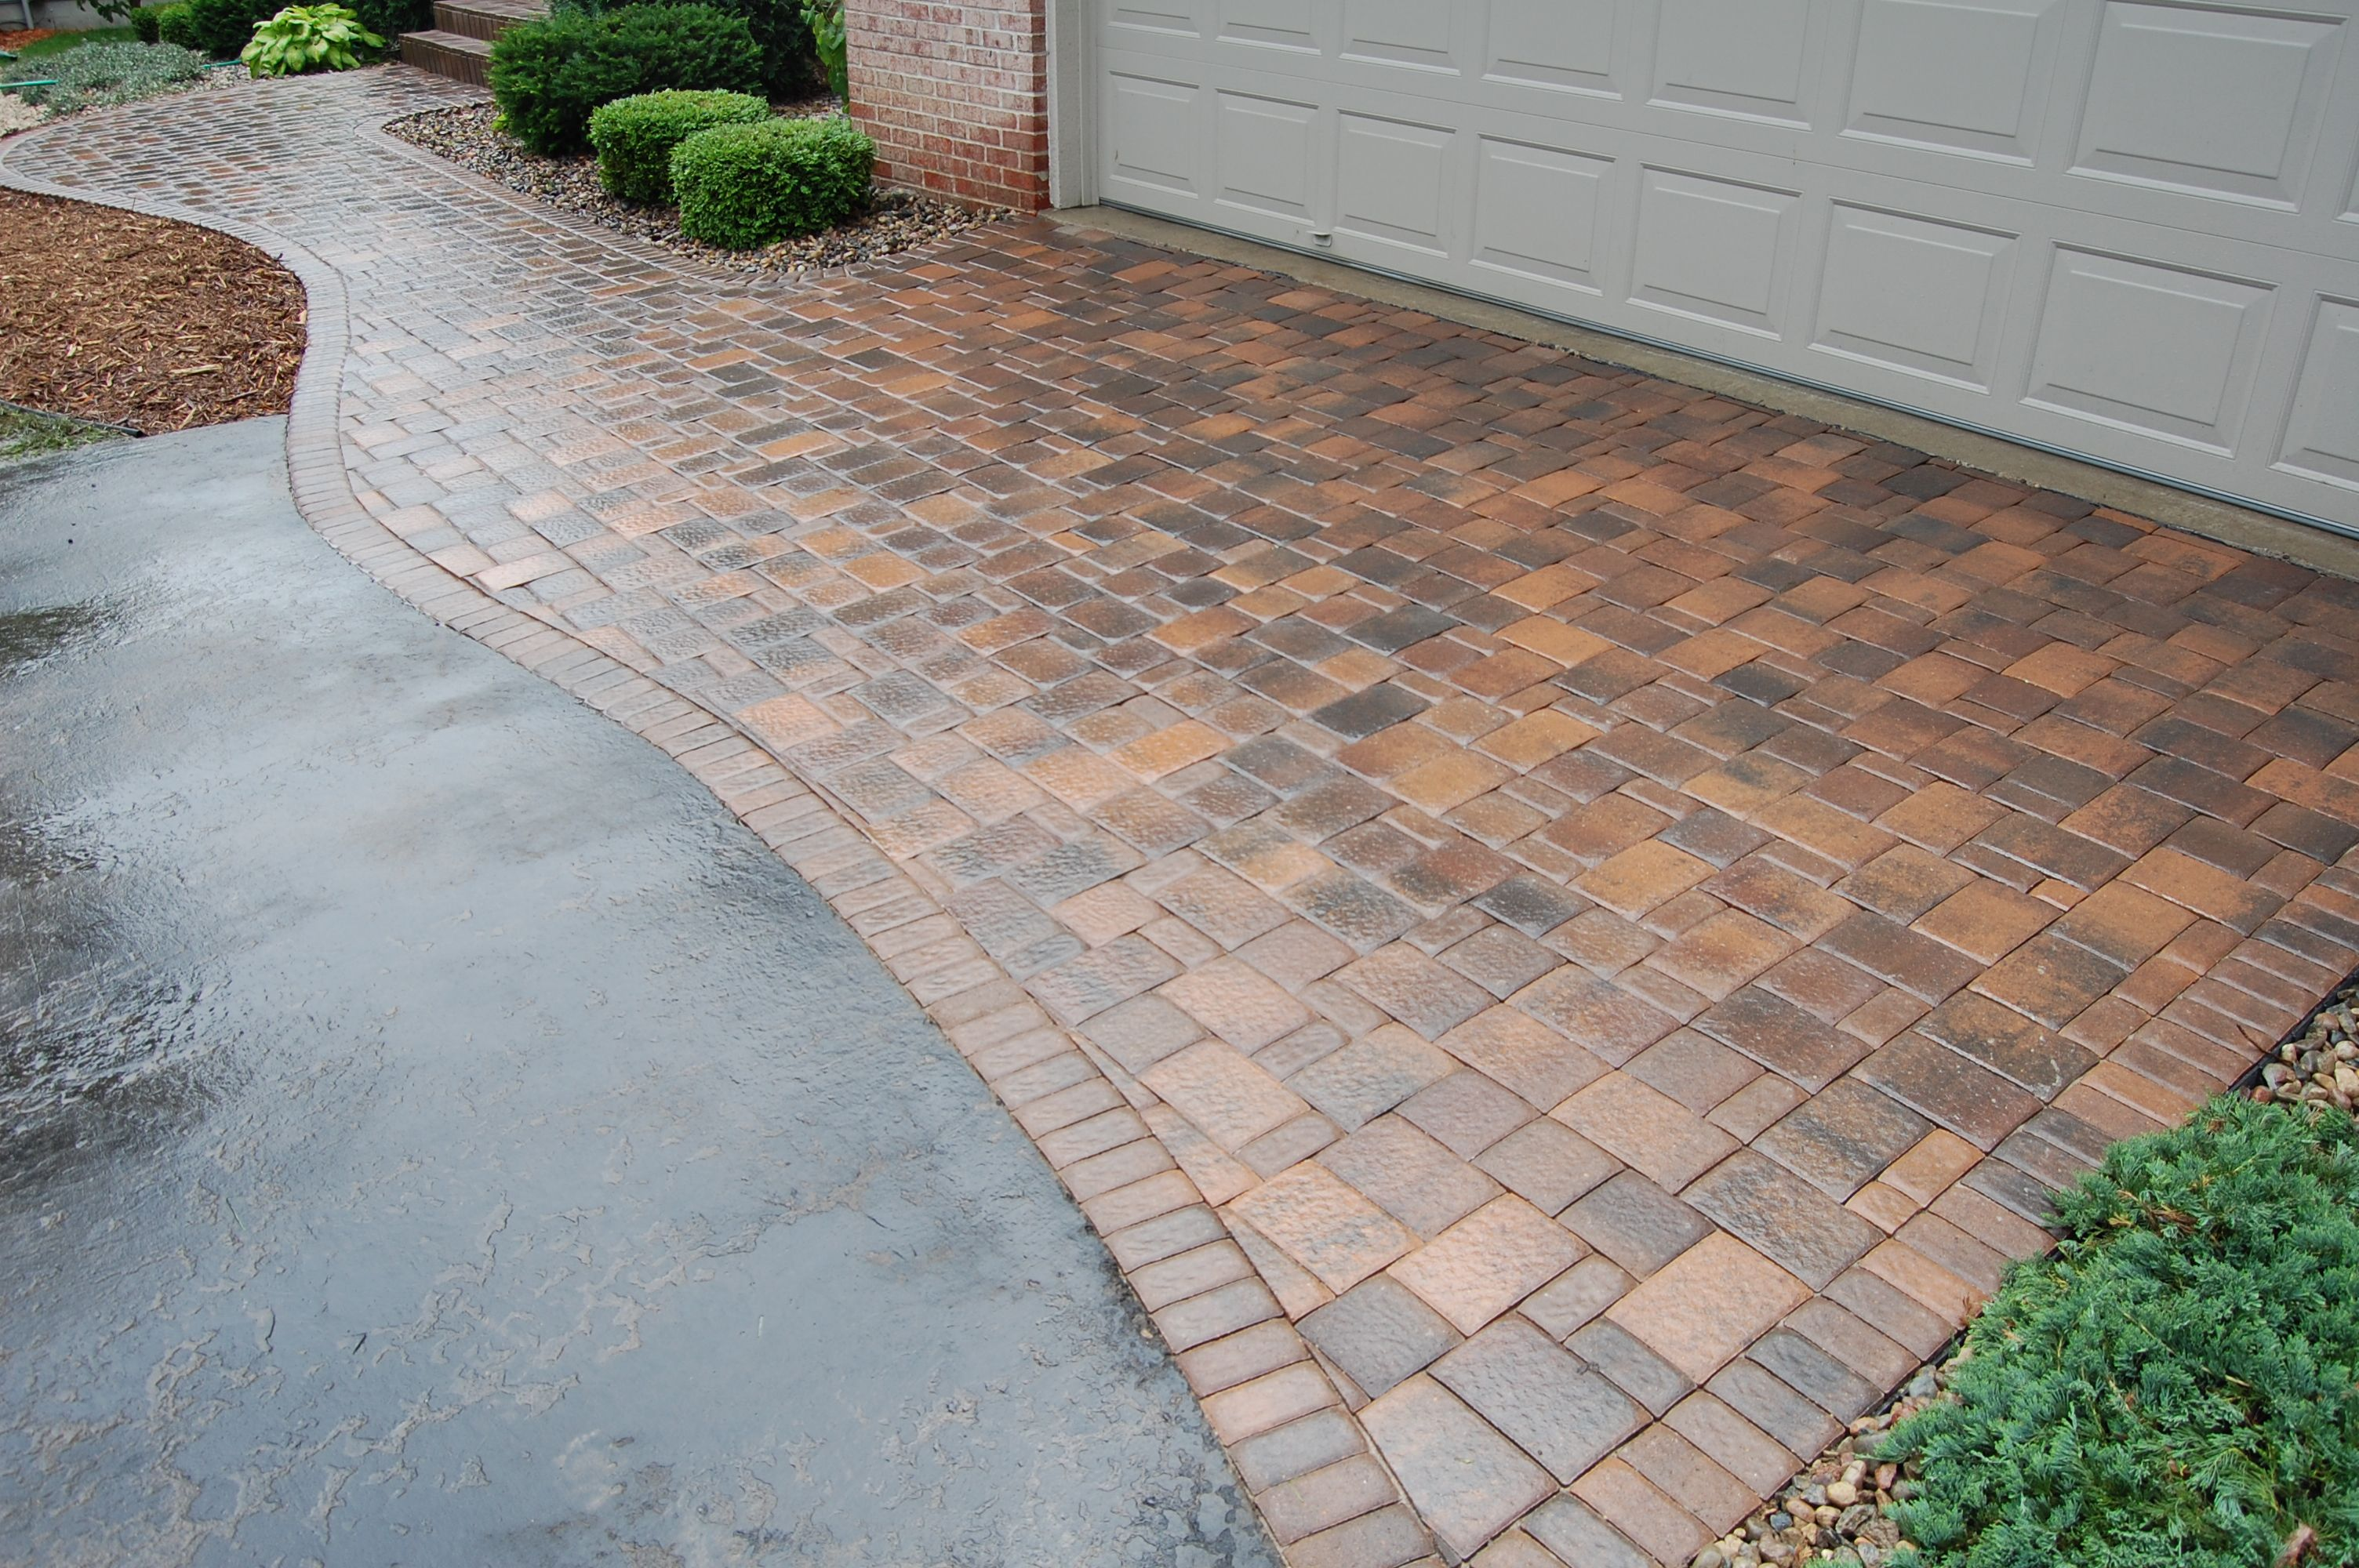 Asphalt driveway connected to brick paver patio google for Driveway apron ideas